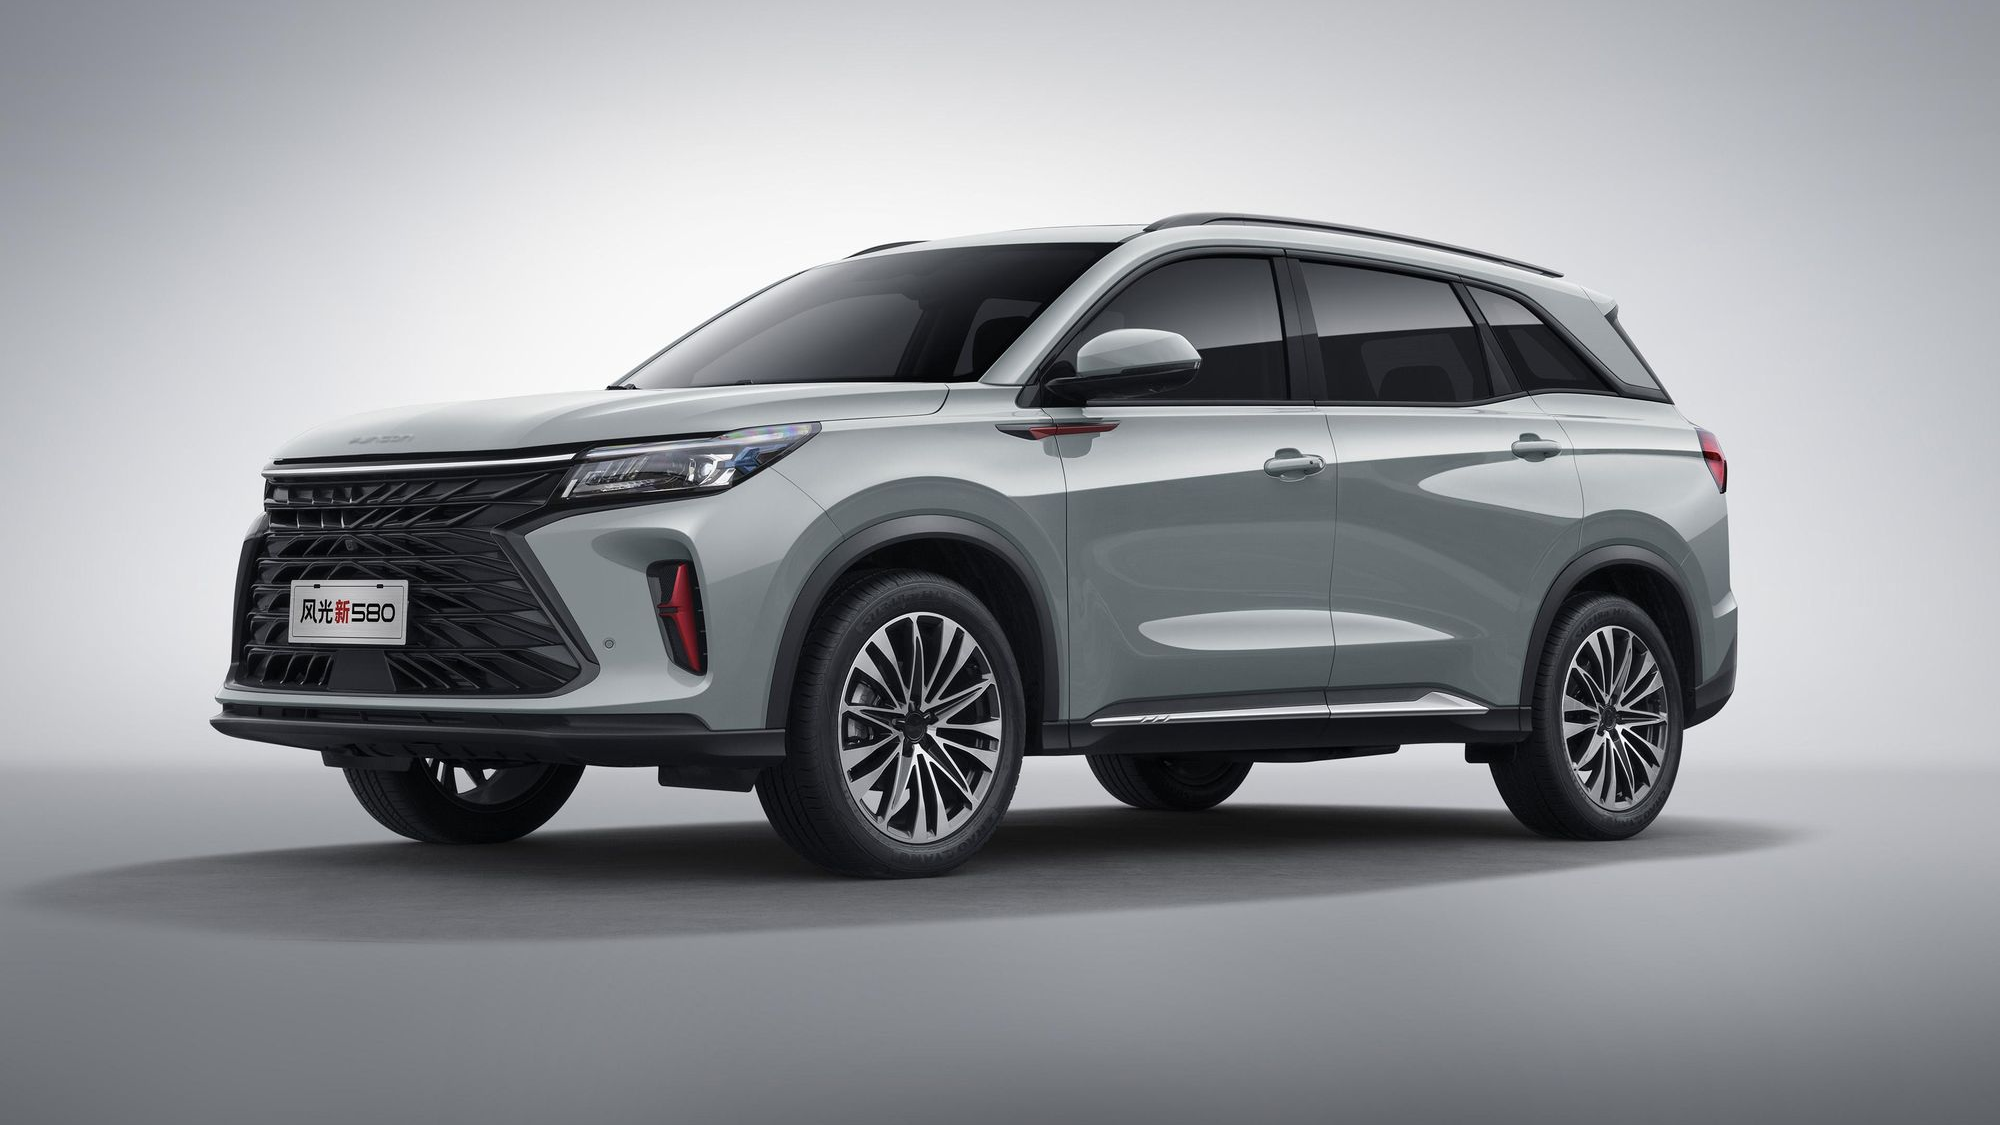 Dongfeng has launched pre-orders for a new compact crossover SUV, the Fengguang 580. The car is rather large for its class, but manages to cost between $15,000 and $20,000 USD (96,000 – 130,000 CNY).